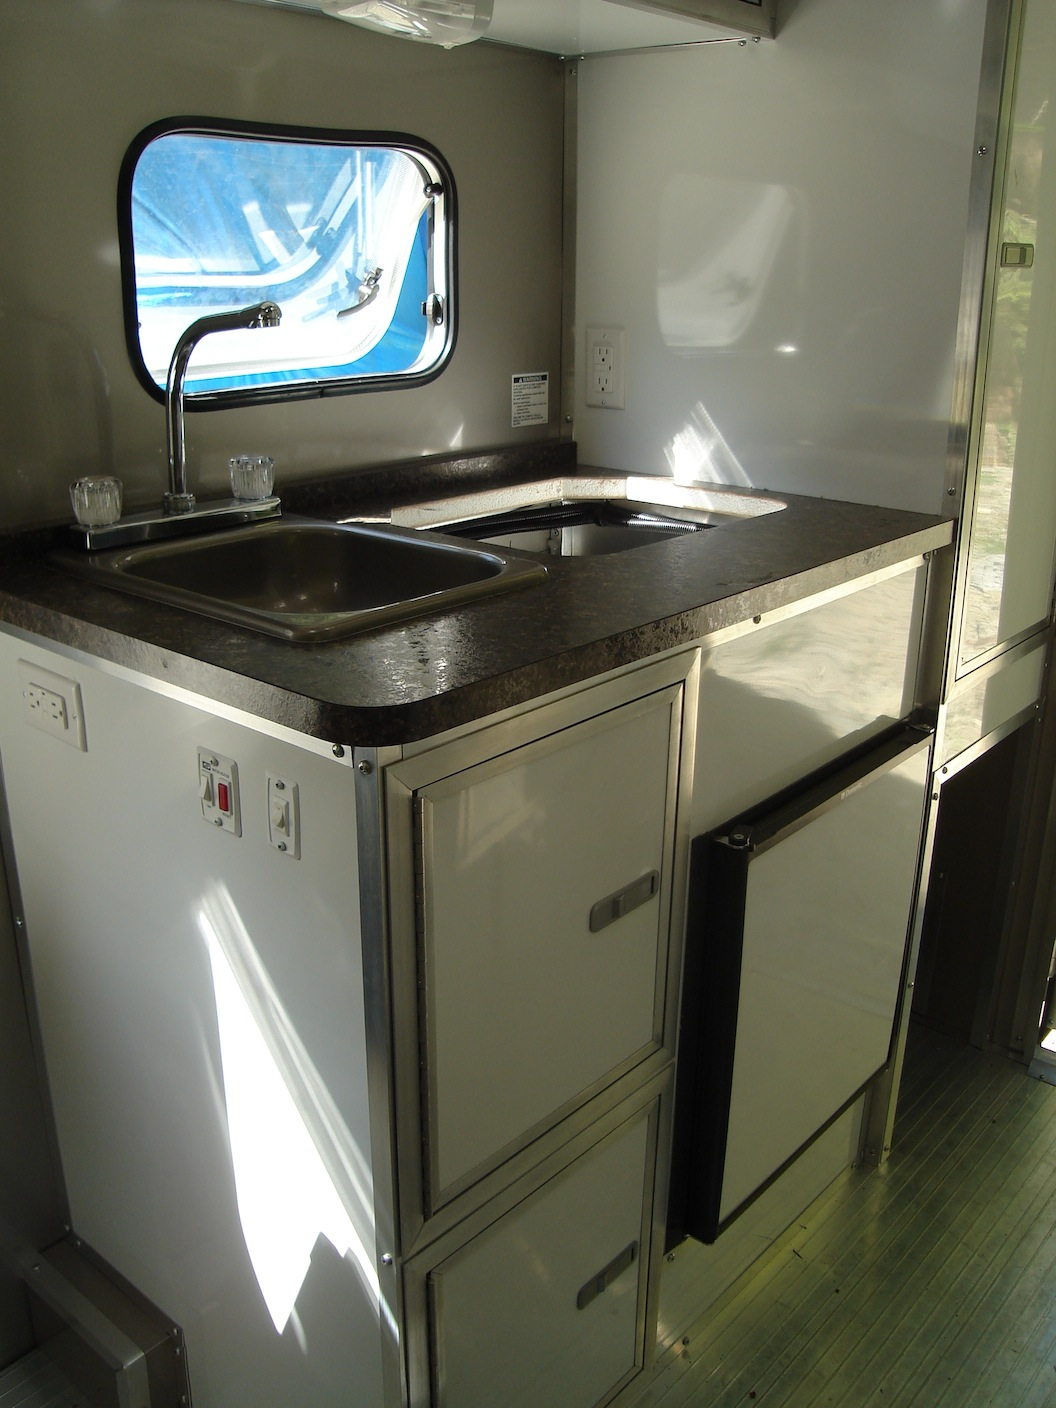 My chemical free house building a non toxic trailer for Bad smell in kitchen cabinets